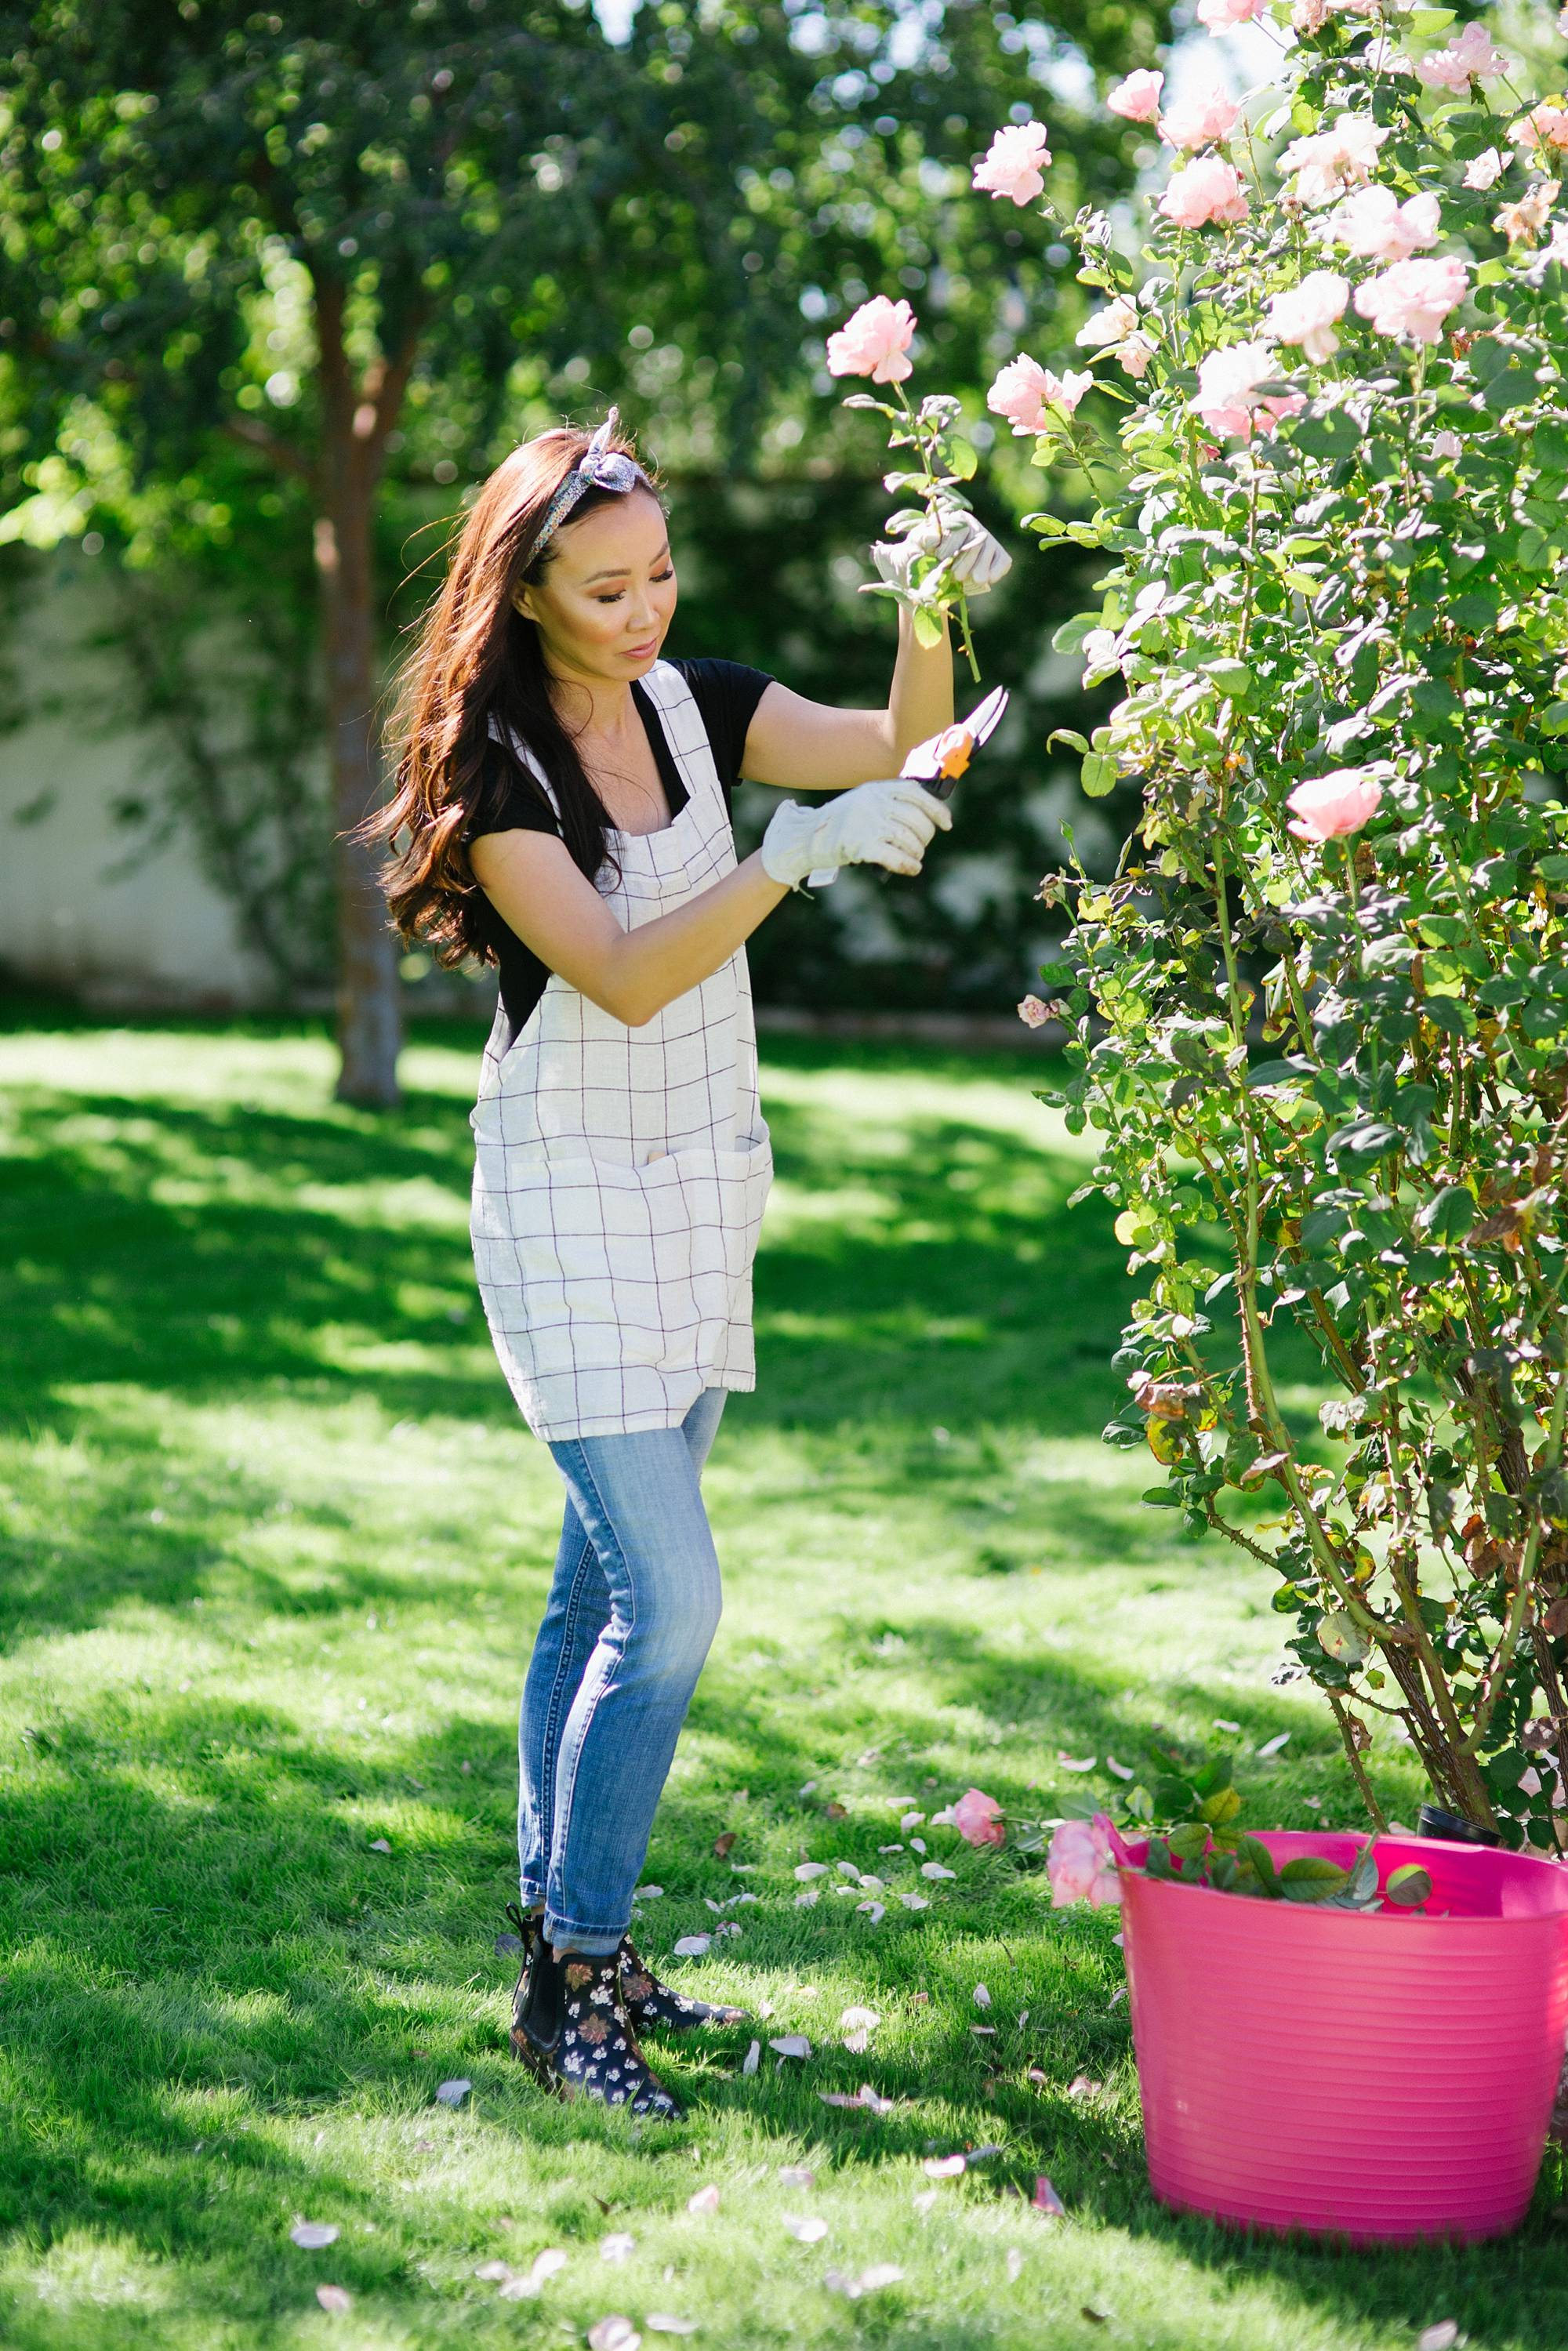 in the garden cutting roses //chai floral leather booties in black FitFlop cute booties and garden booties too with a pink tubtrug liberty London scarf in hair